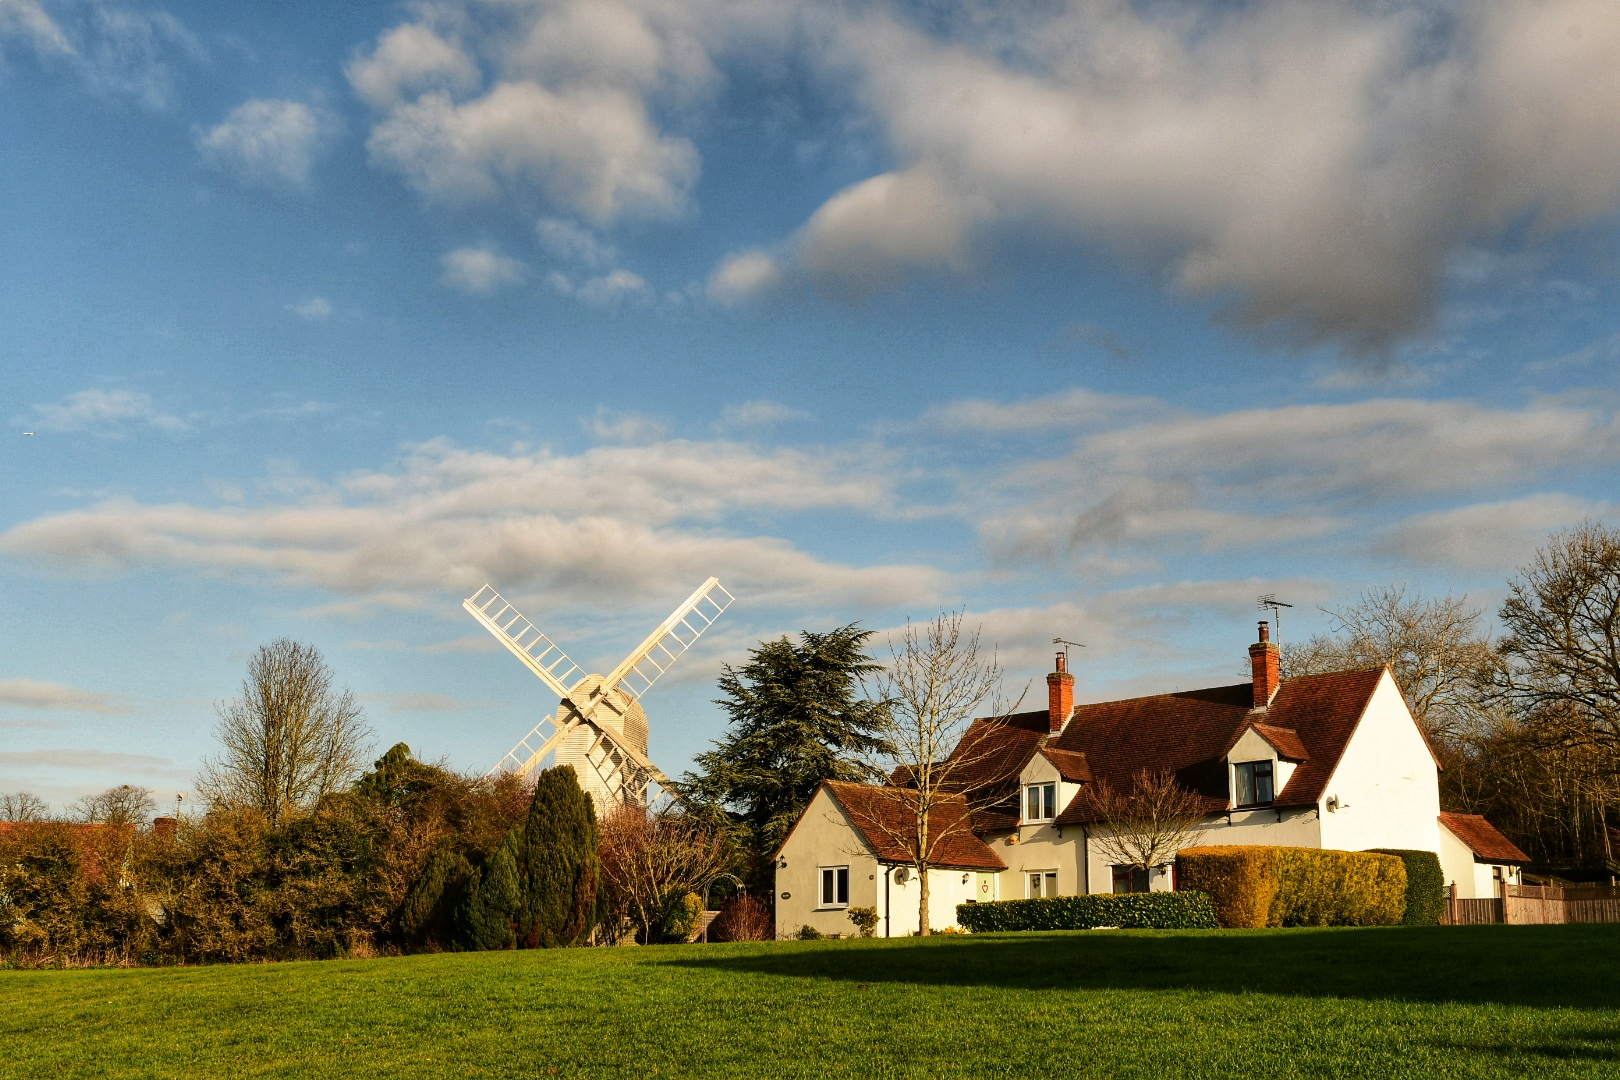 A picture of the braintree district with a windmill and a row of houses